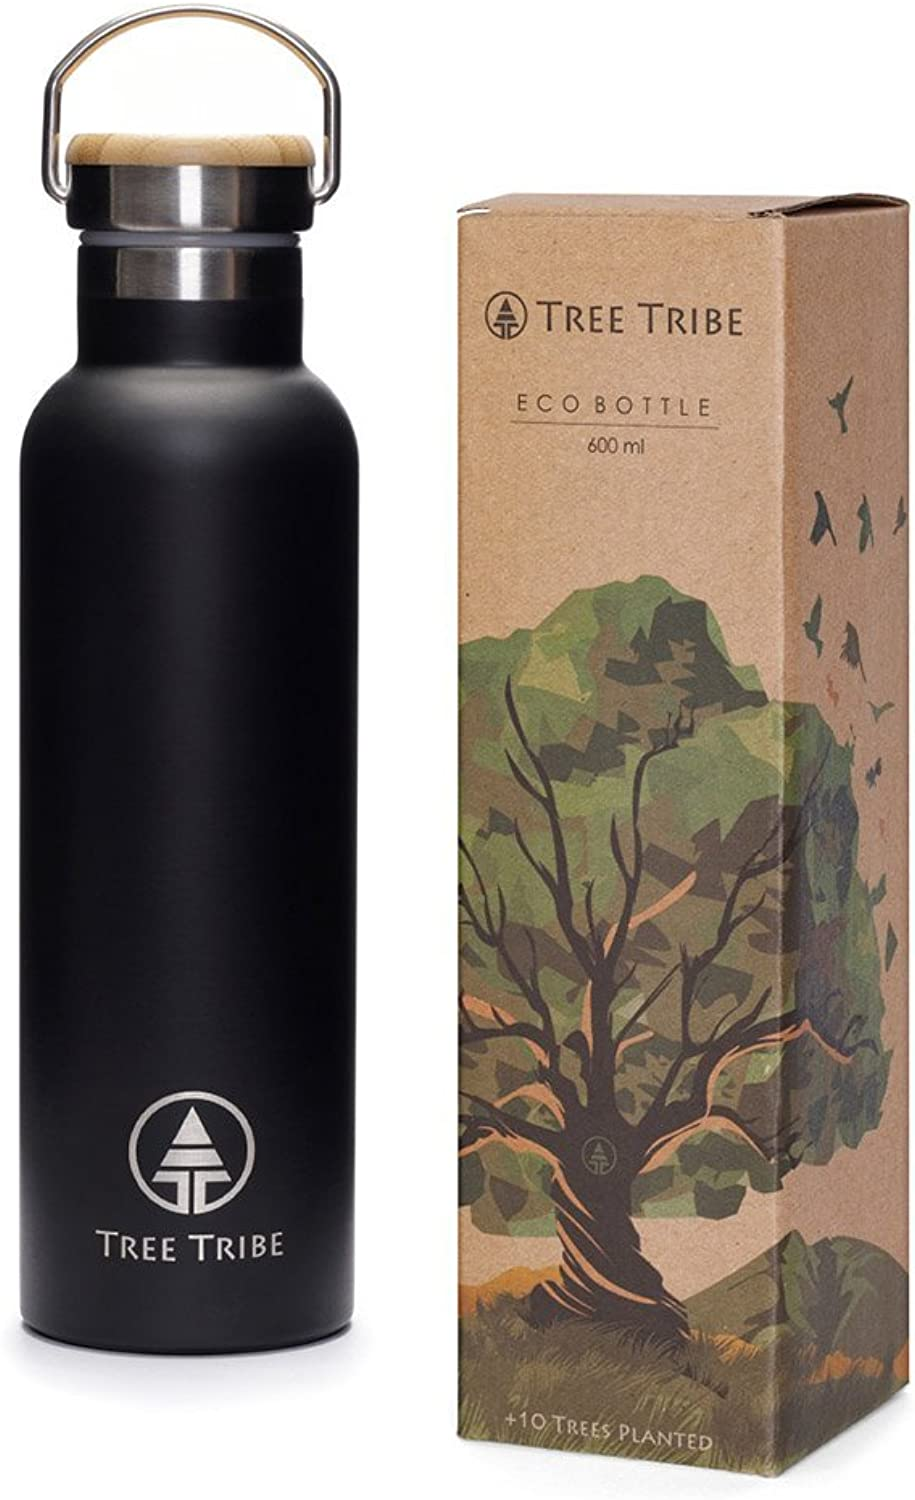 Tree Tribe Stainless Steel Water Bottle  Indestructible, Insulated, Eco Friendly, 100% Leak Proof, BPA Free No Plastic, Double Wall Thermos Technology for Hot and Cold Drinks, Wide Mouth, Bamboo Cap